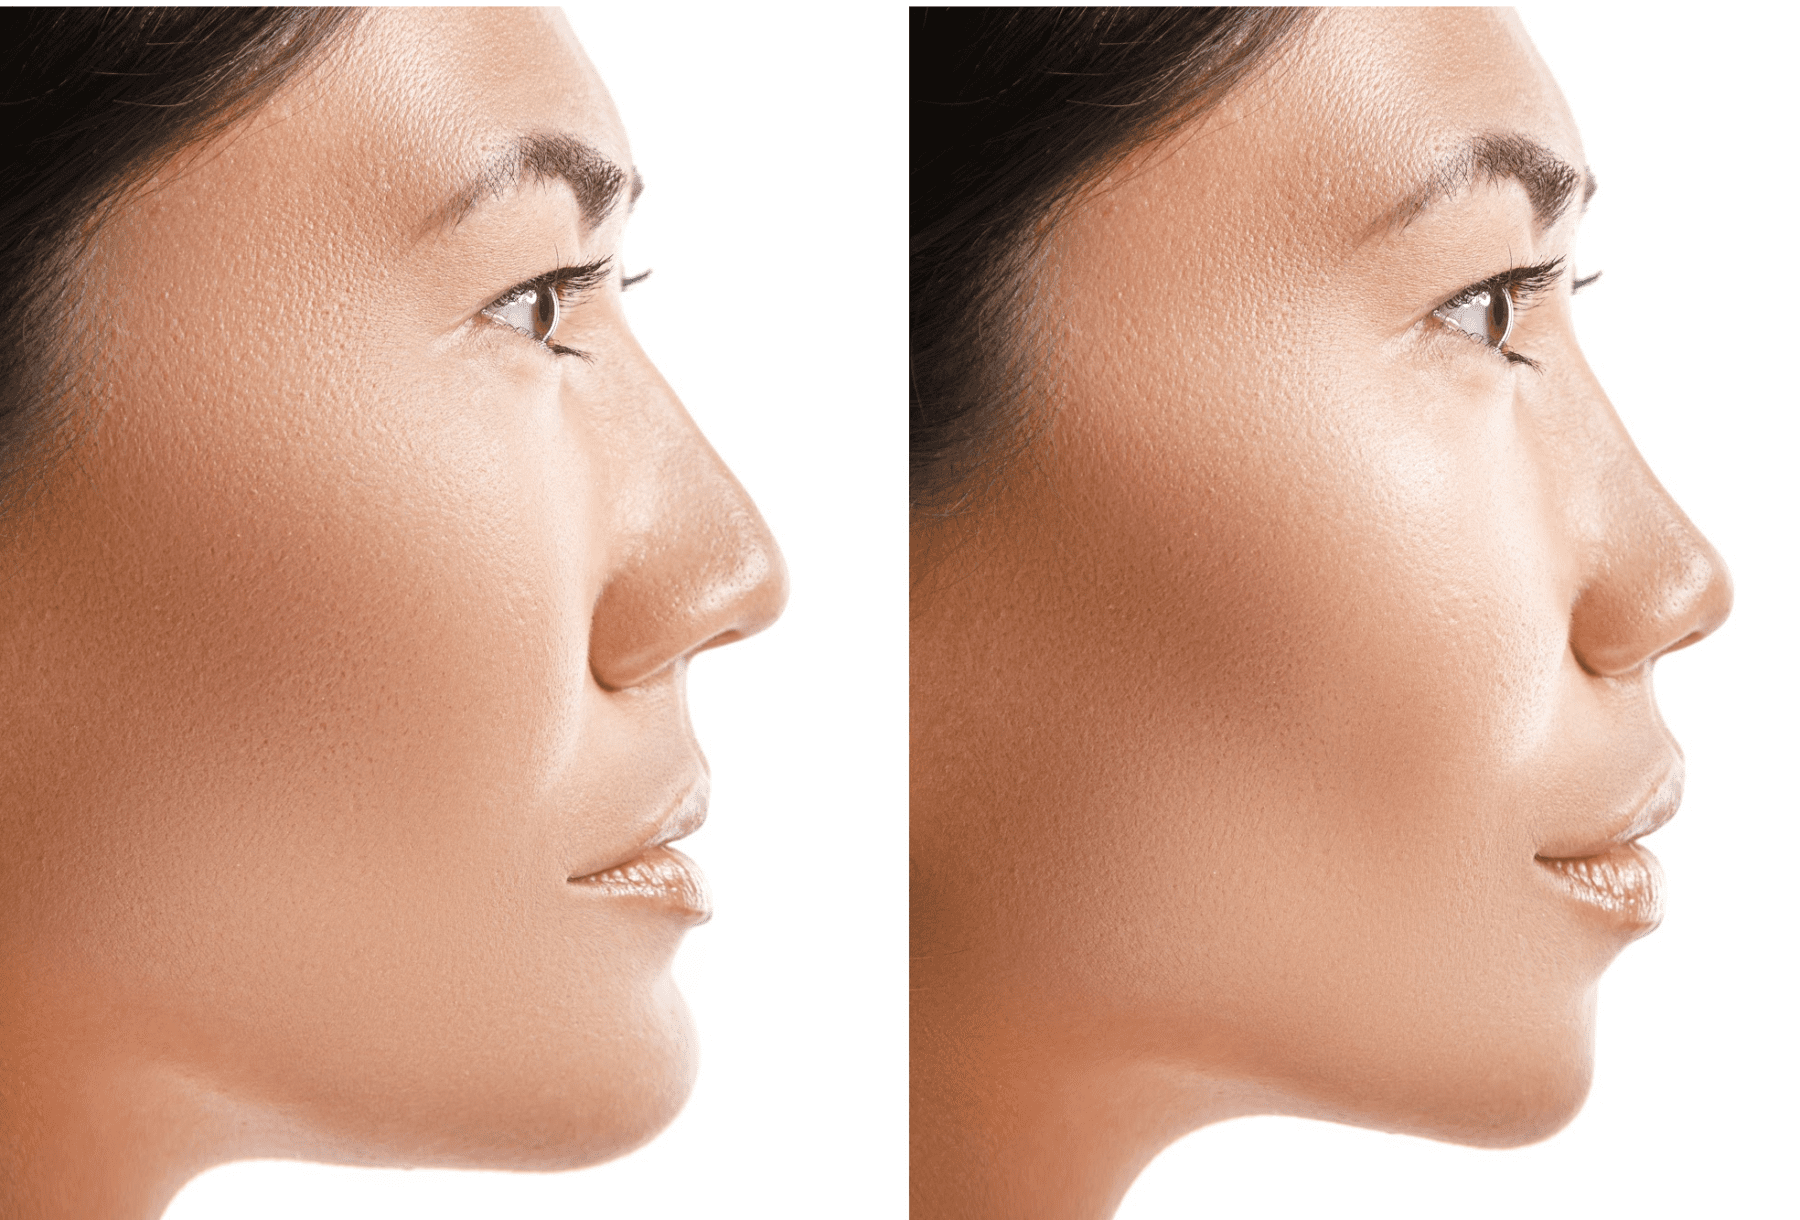 How Long Does It Take To Recover From a Nose Surgery